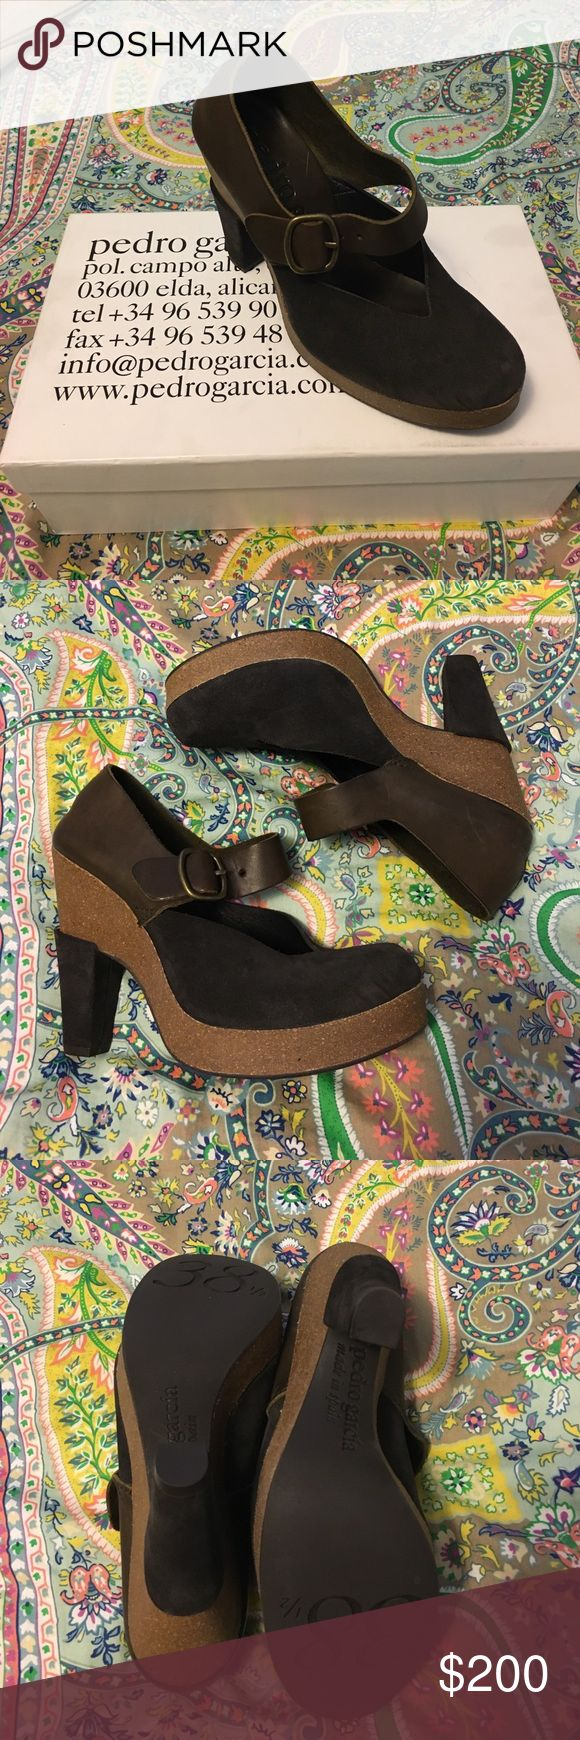 ✨ Brand New Pedro Garcia ✨ Cafe/Charcoal Mary Jane Pedro Garcia! Received as a gift, tried them on and they're a little short for me. 😞 My loss your gain!! Pedro Garcia Shoes Heels